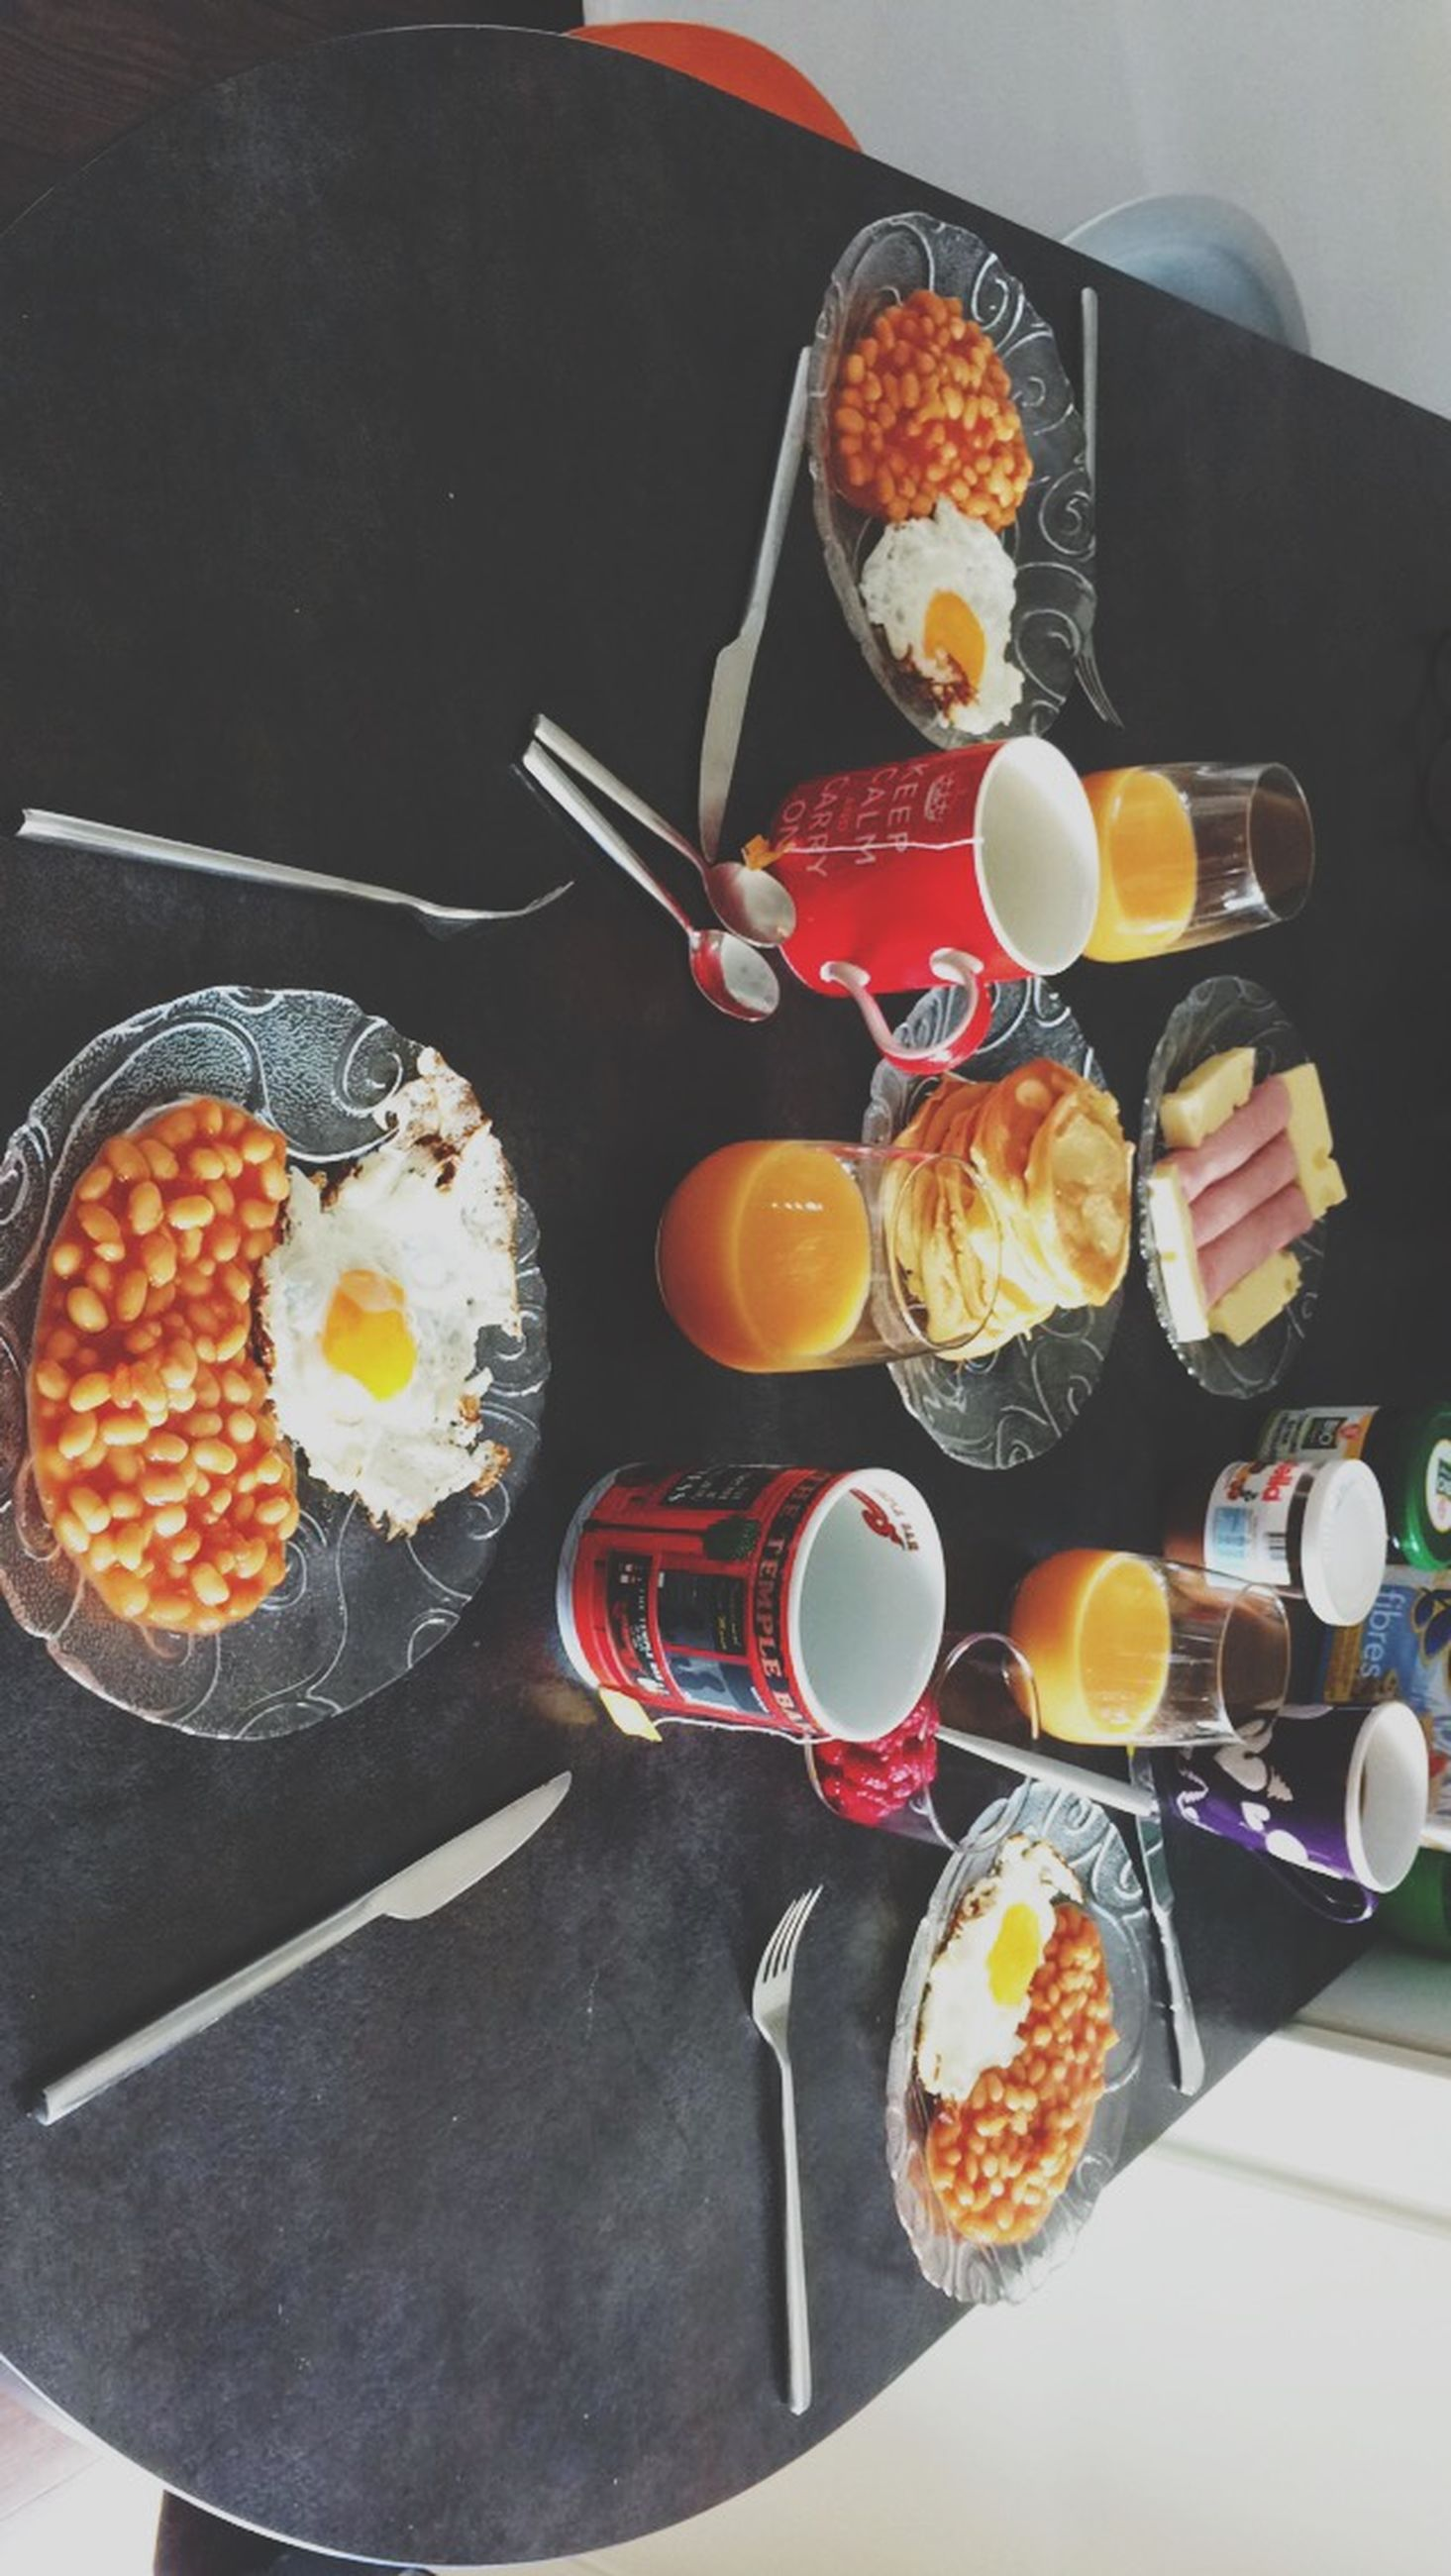 food and drink, food, indoors, freshness, table, ready-to-eat, healthy eating, high angle view, still life, plate, preparation, meal, indulgence, fork, bowl, preparing food, spoon, cooking, serving size